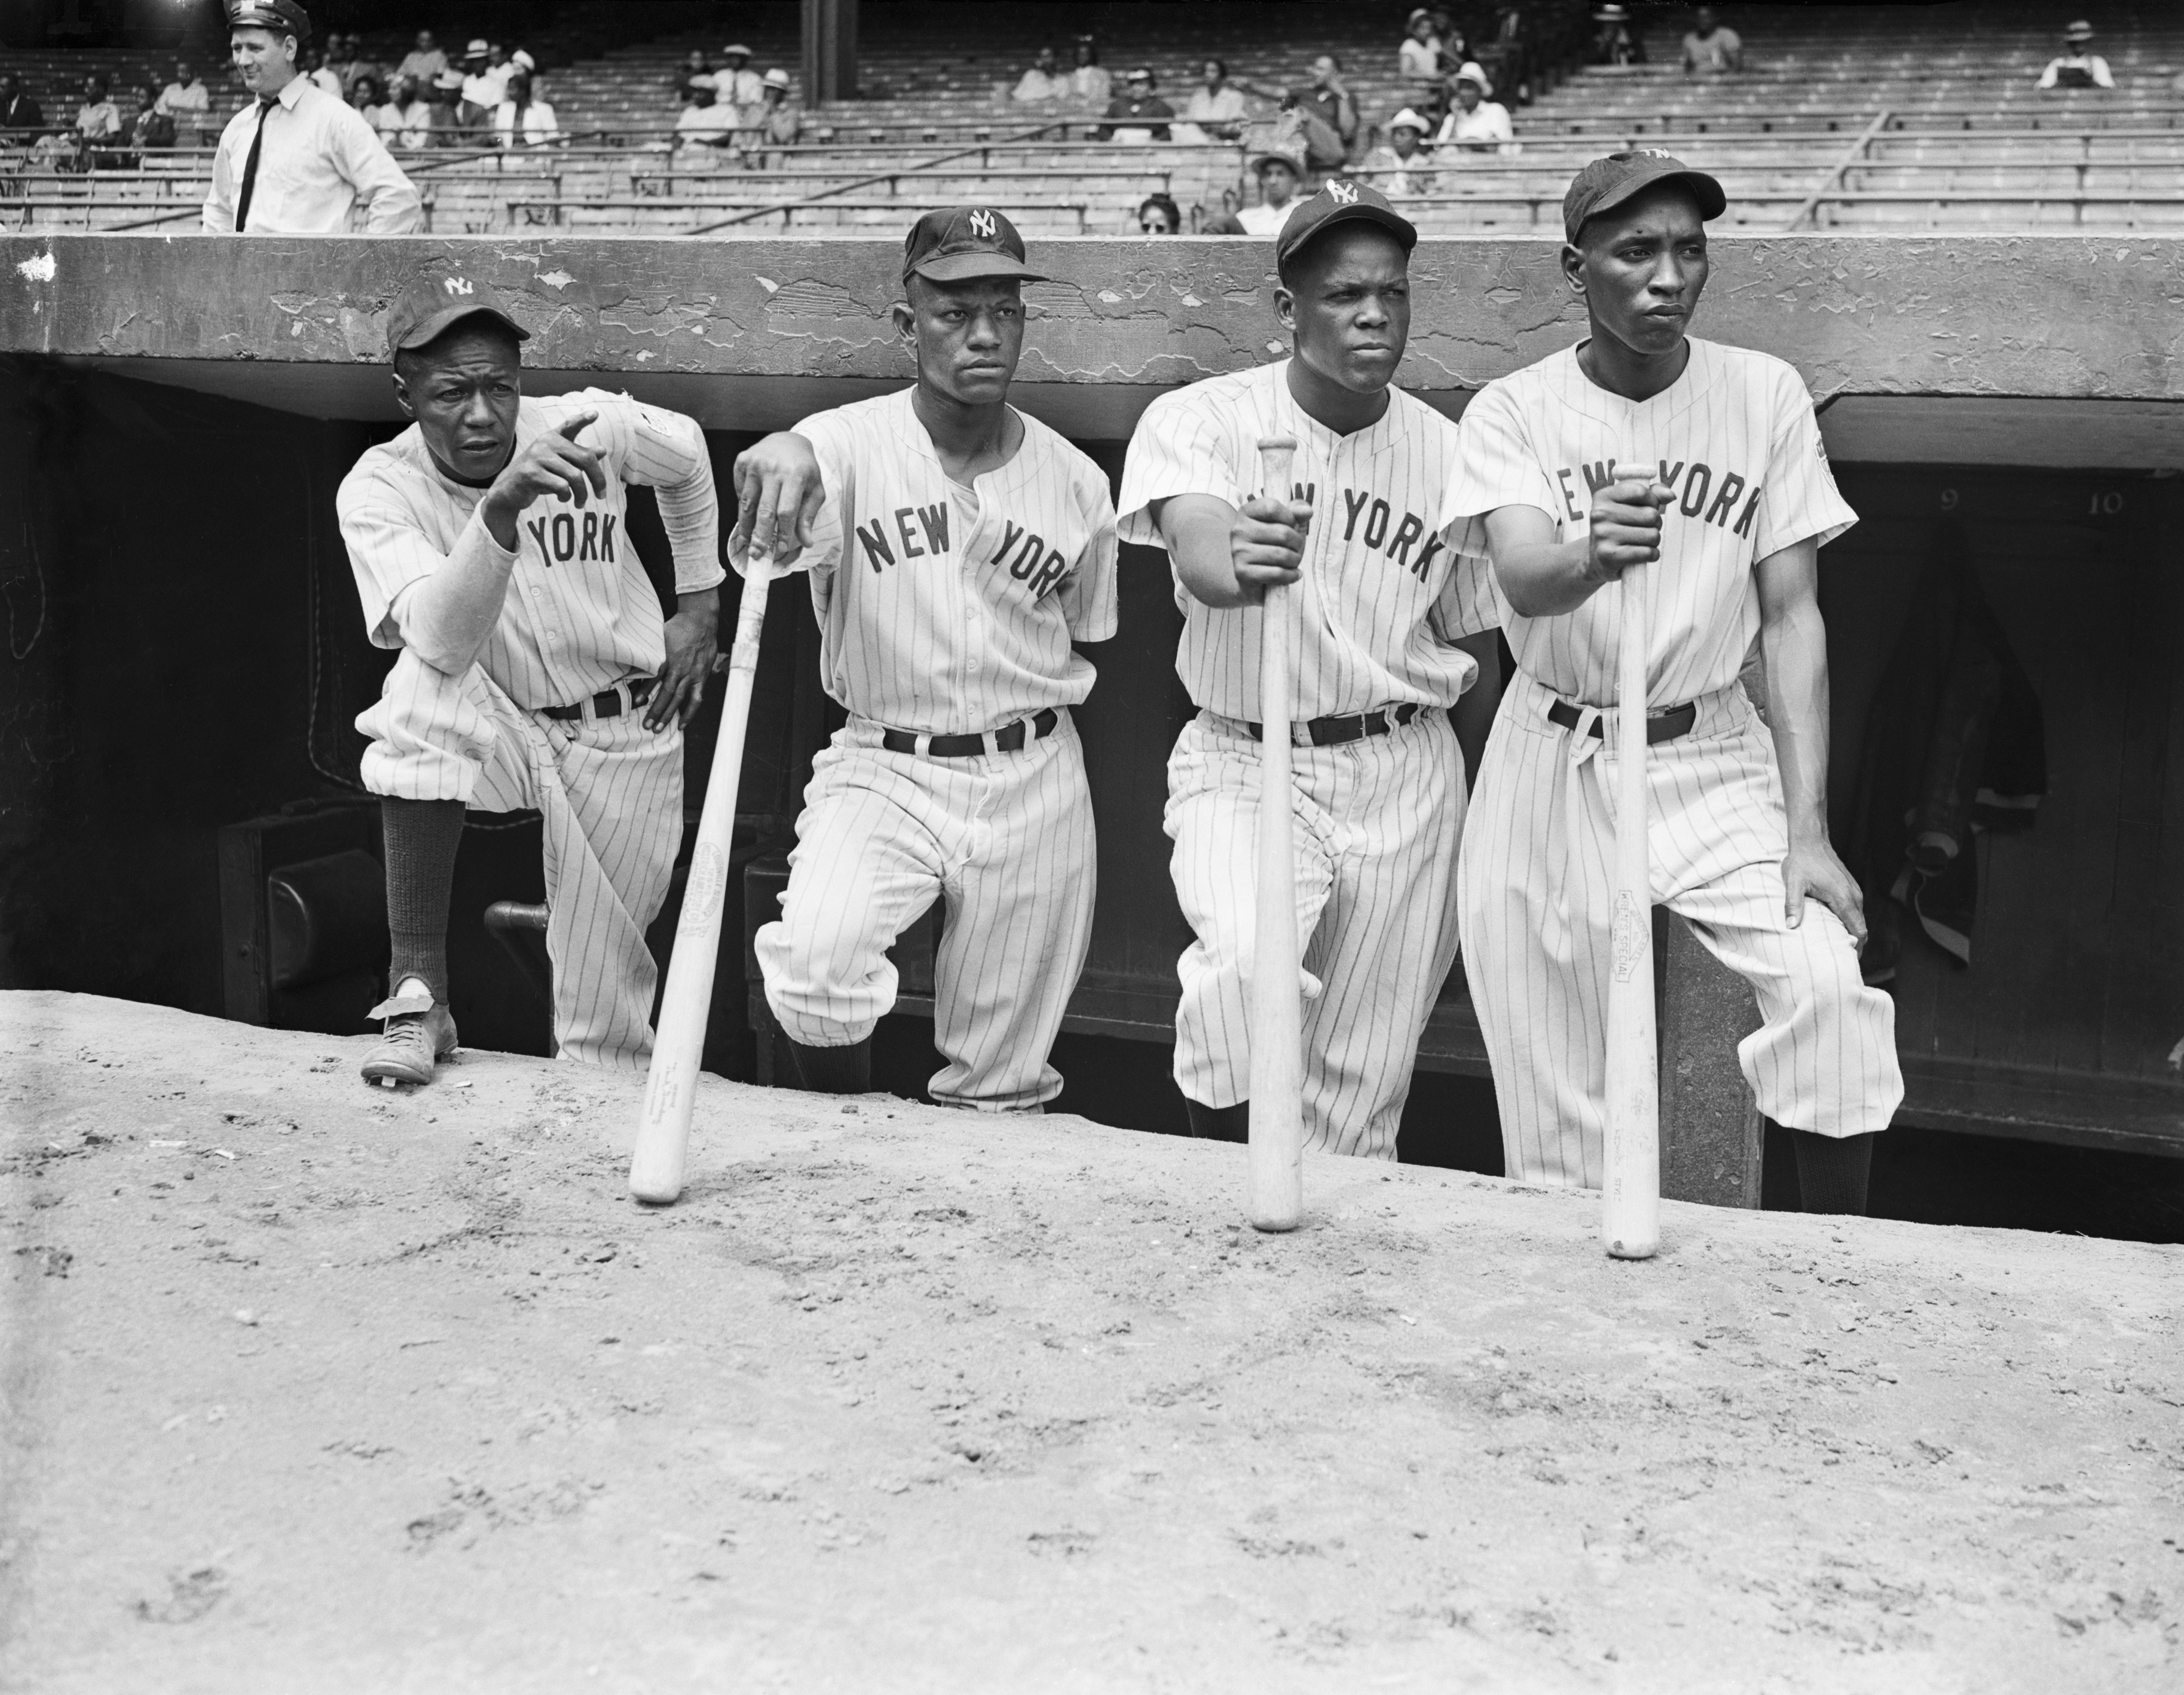 Players on the New York Black Yankees